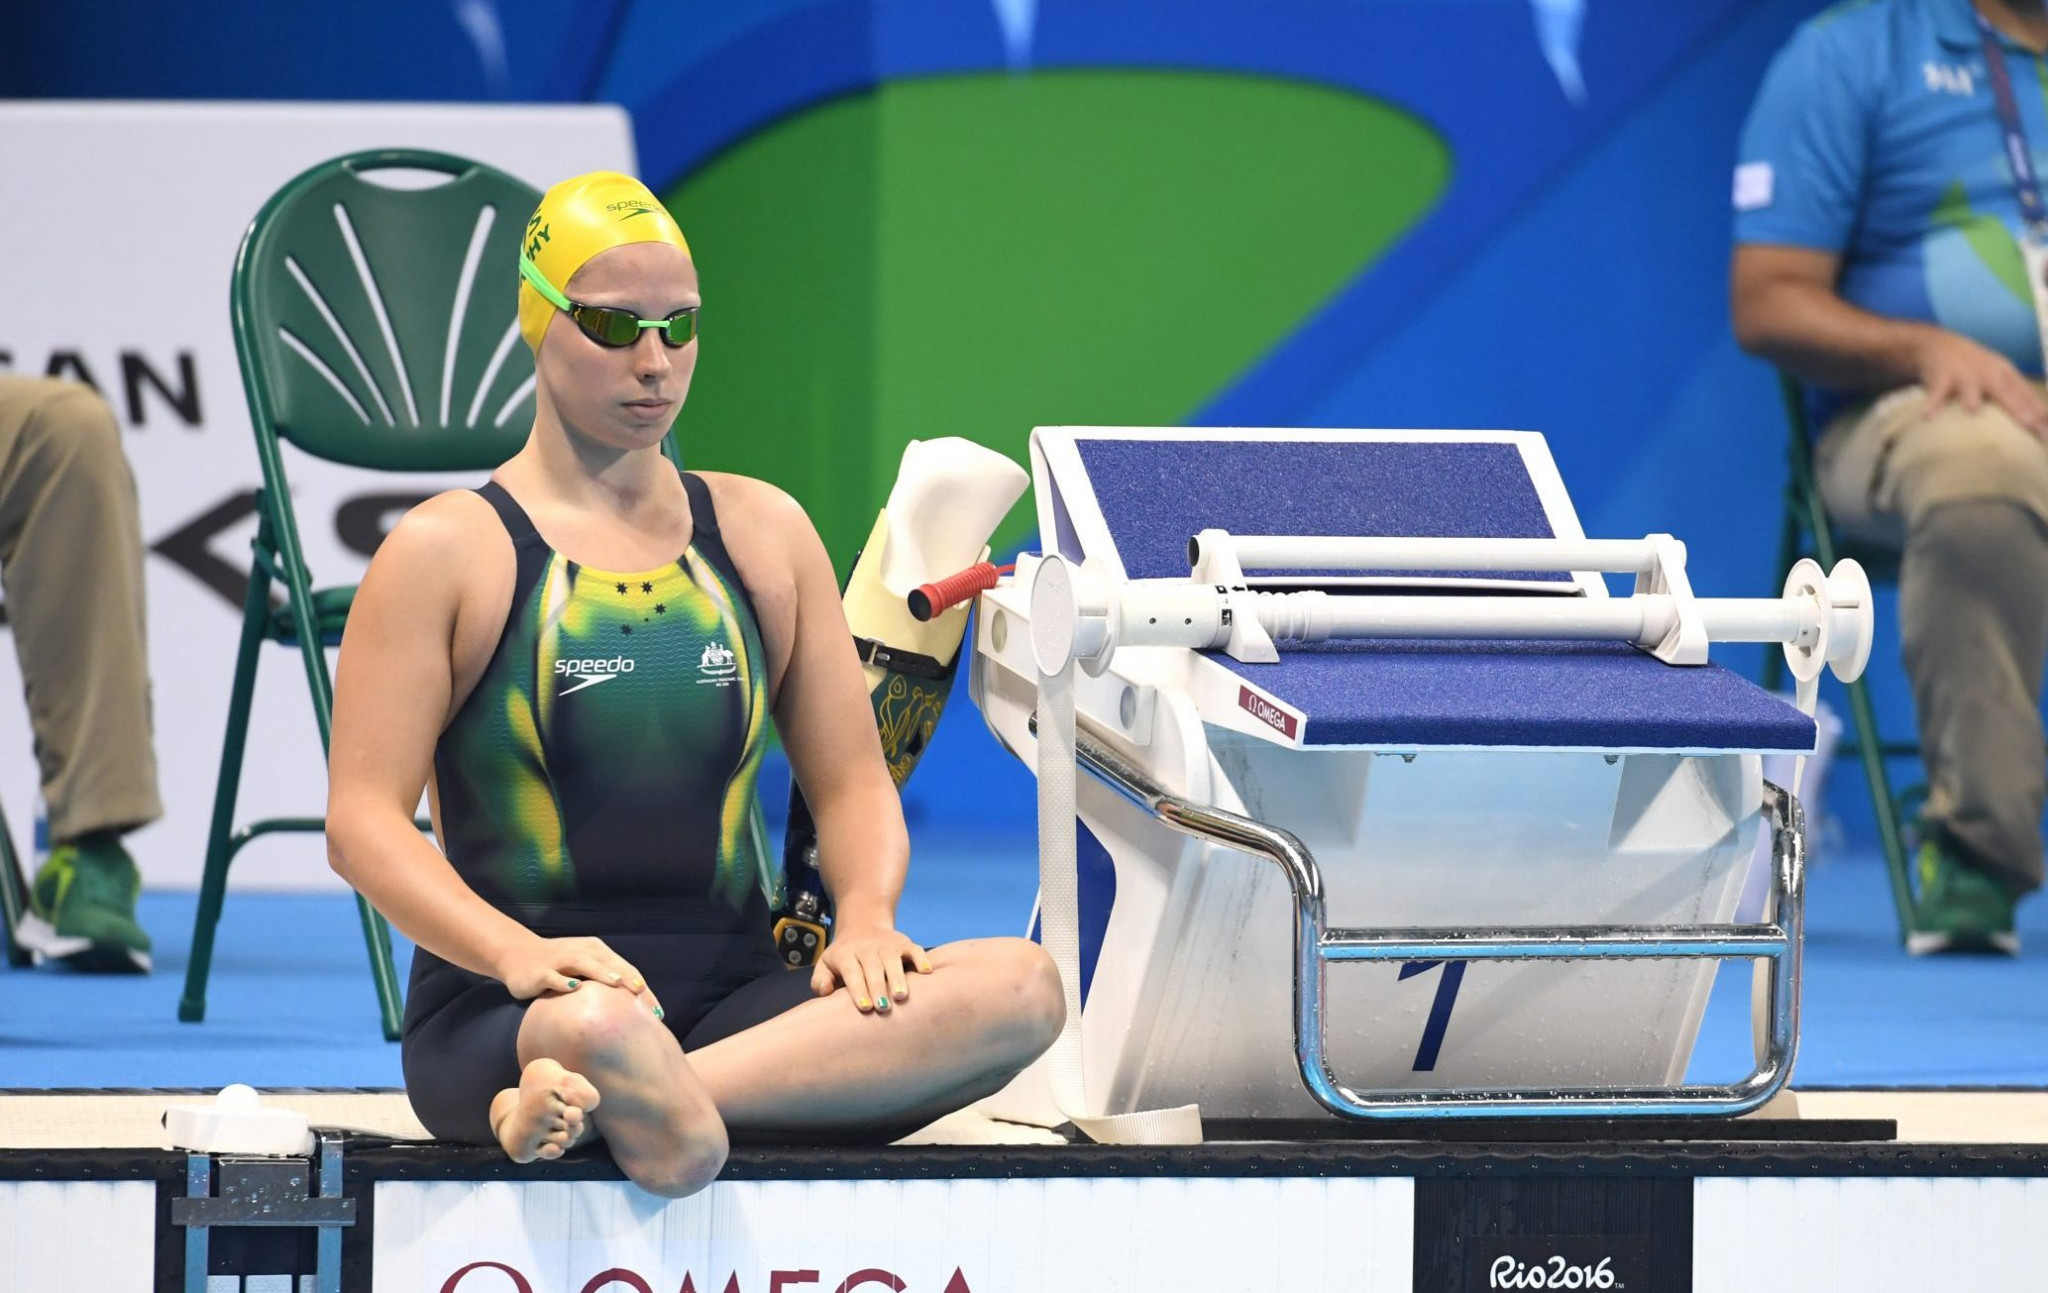 Speedo have partnered with the Australian Paralympic Team for the previous three Games ©Paralympics Australia